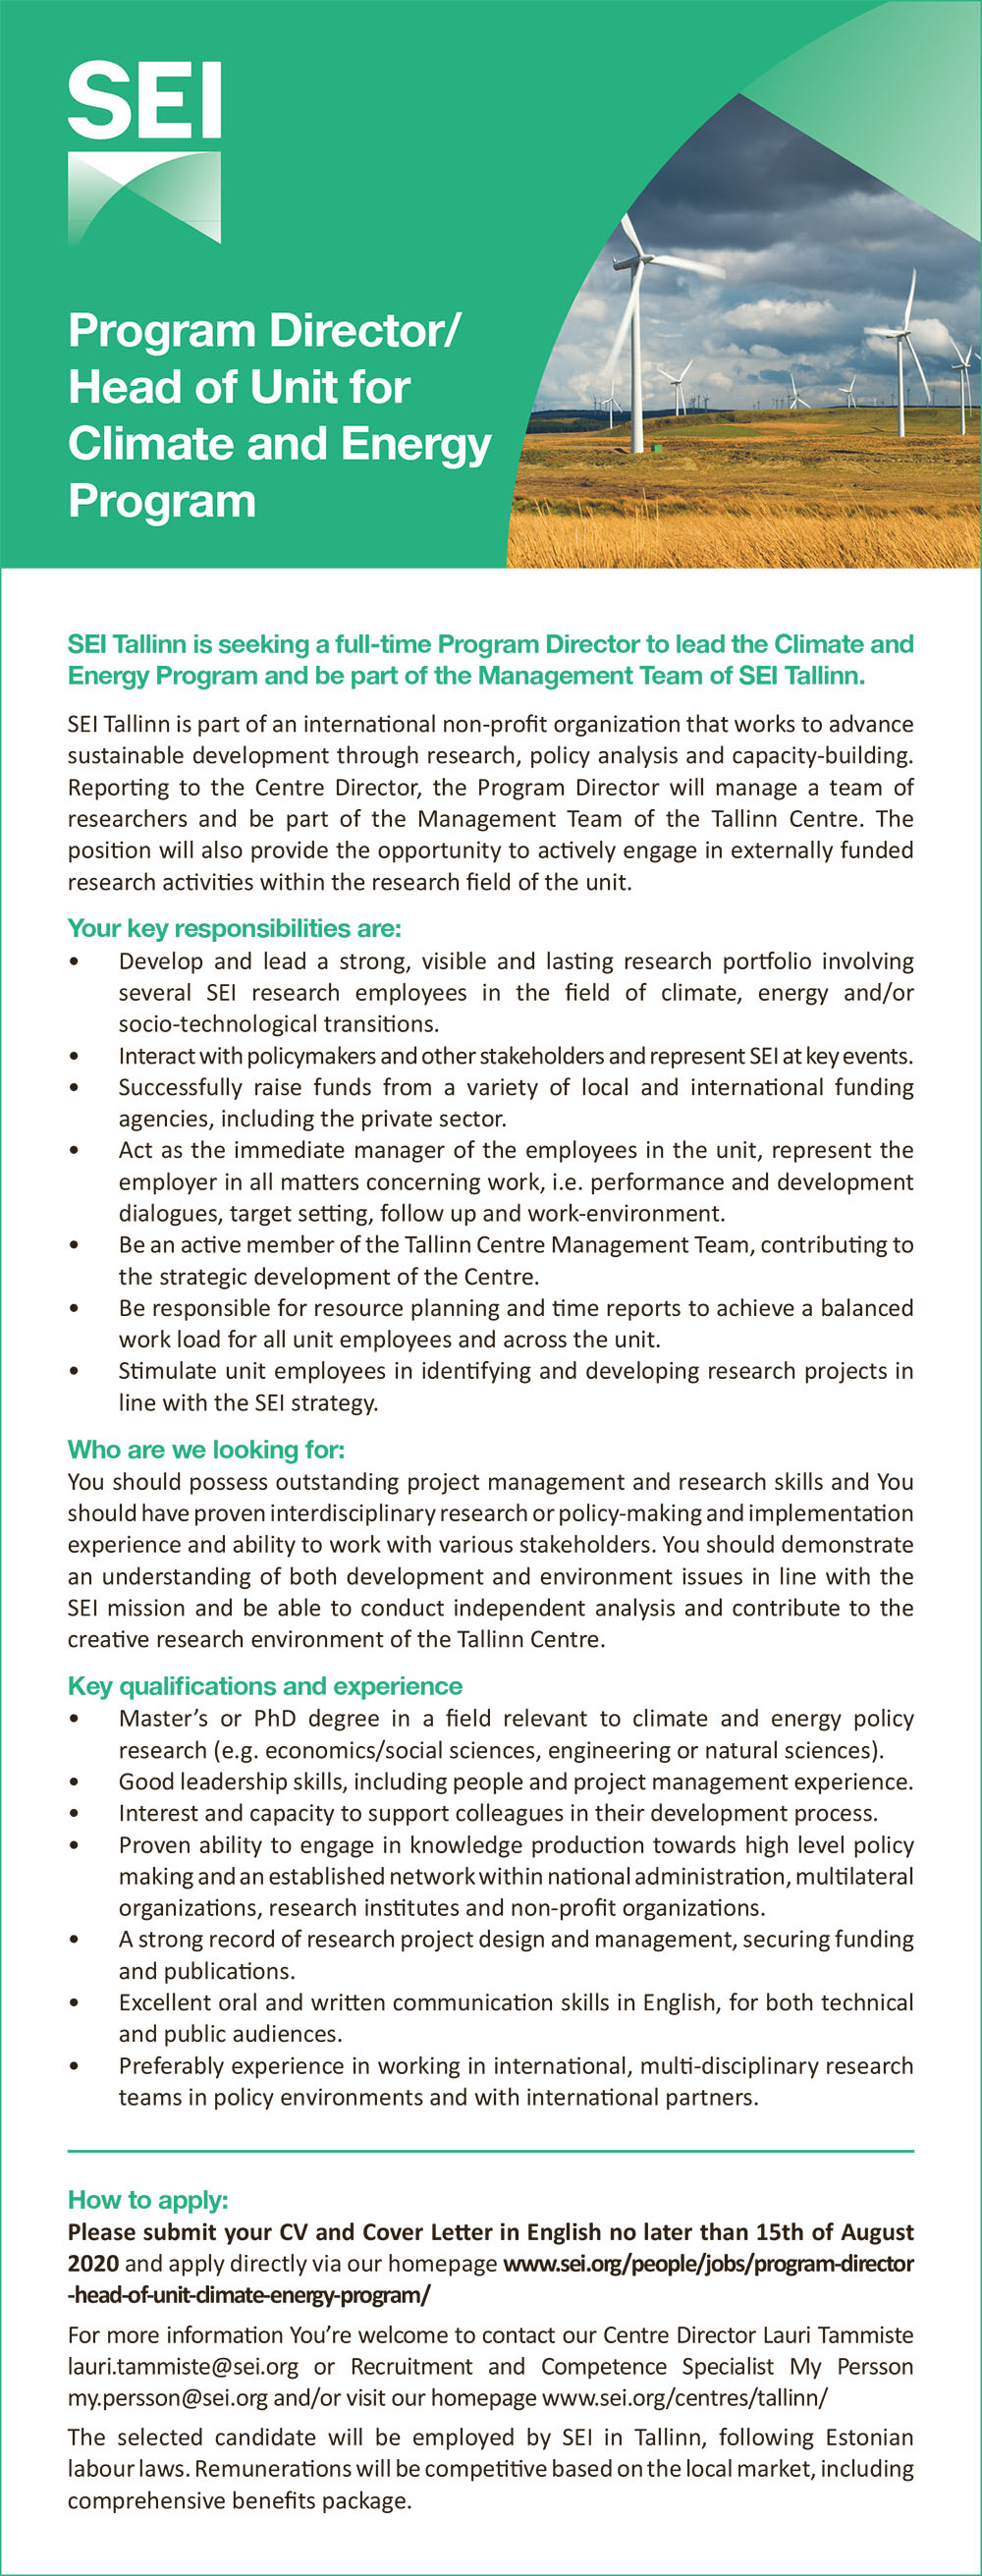 Program Director/ Head of Unit for Climate and Energy program